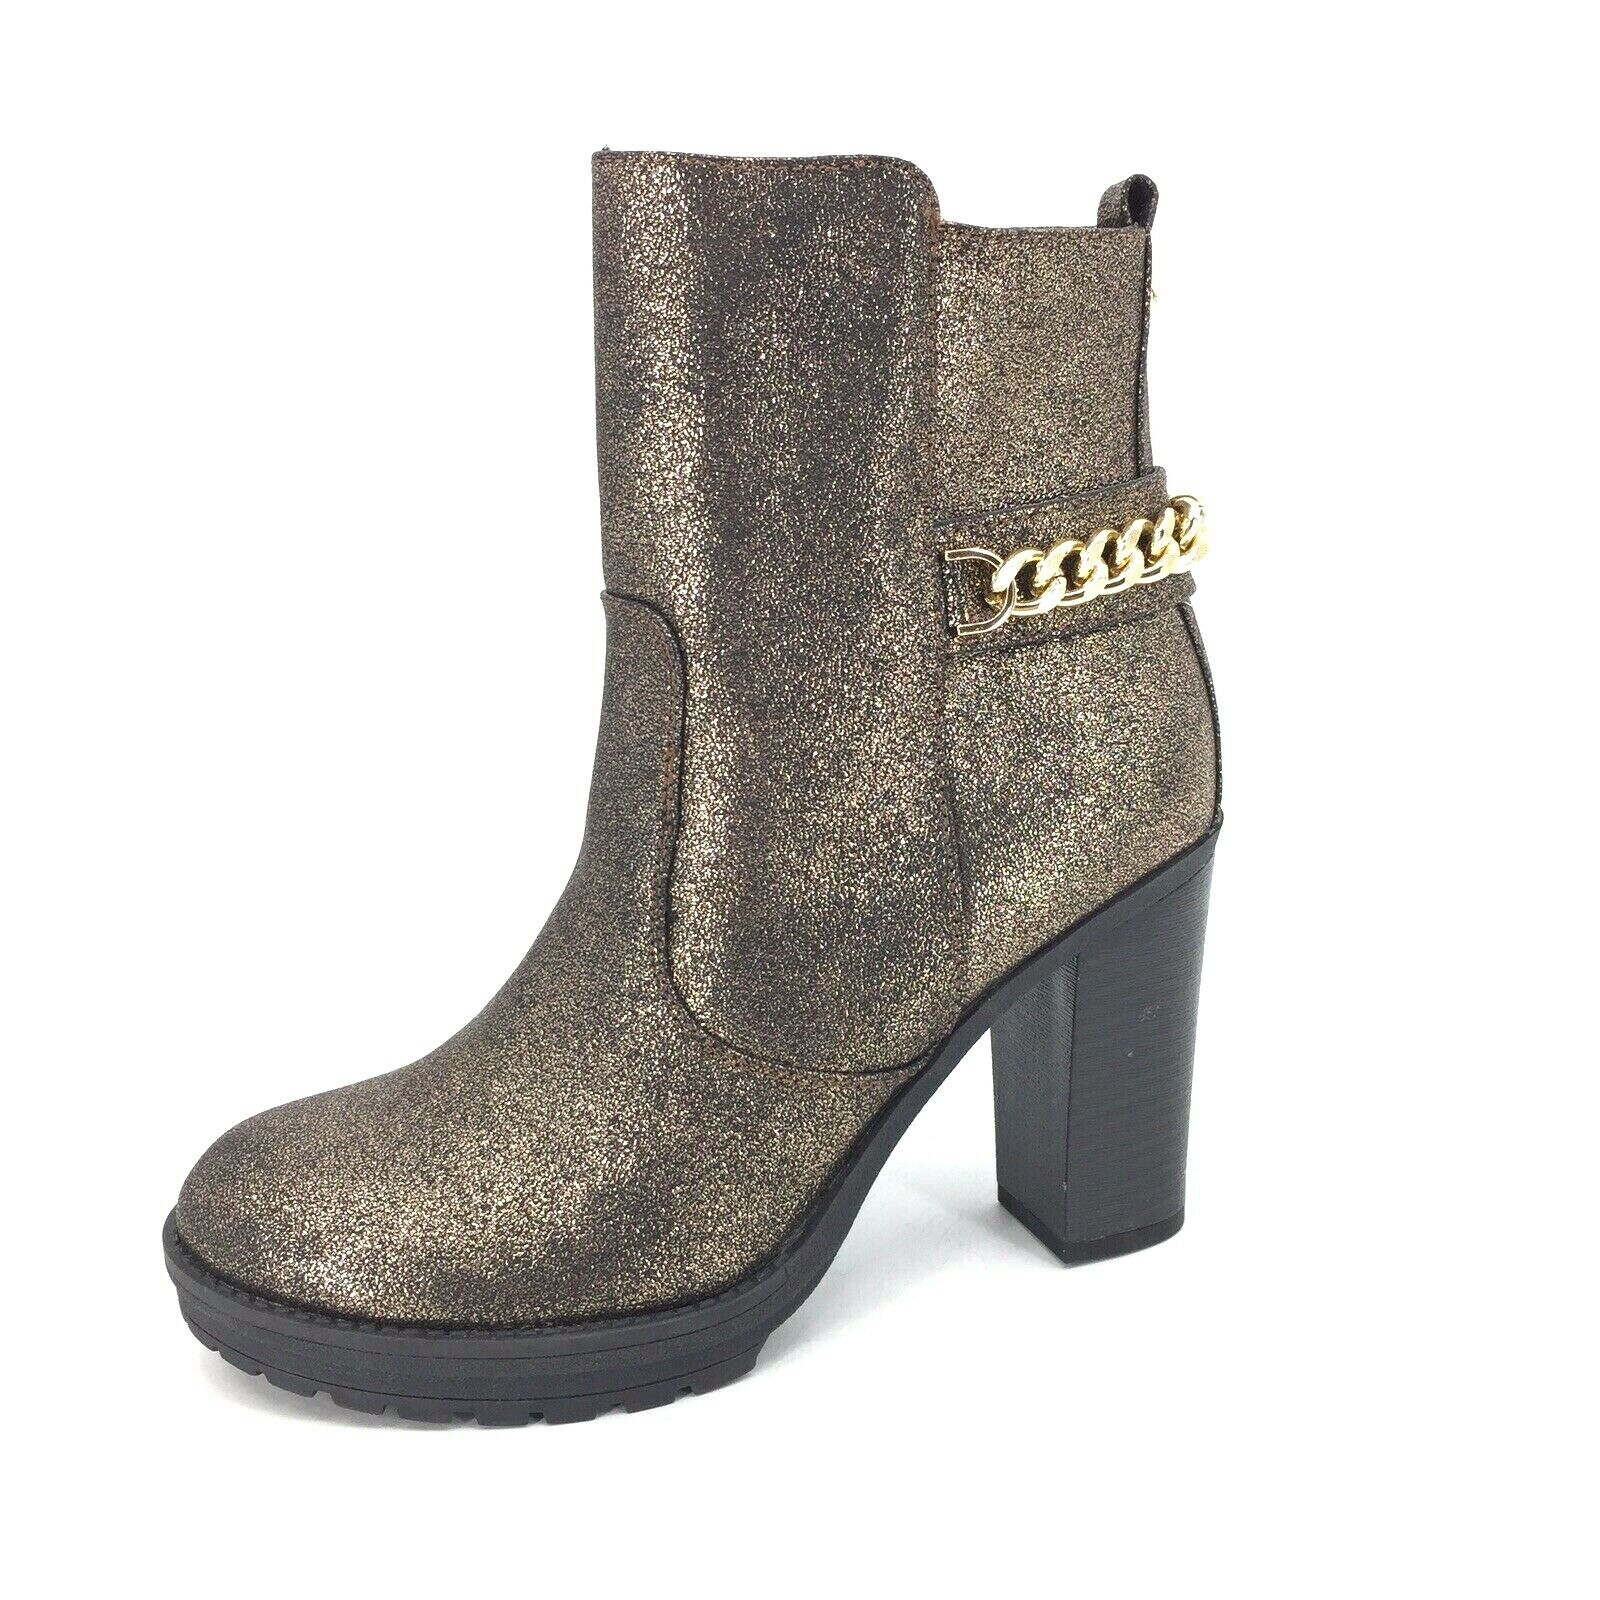 G by Guess Greedy Womens Moto Boot Bootie gold Glitter Shimmer Size 9M Bronze